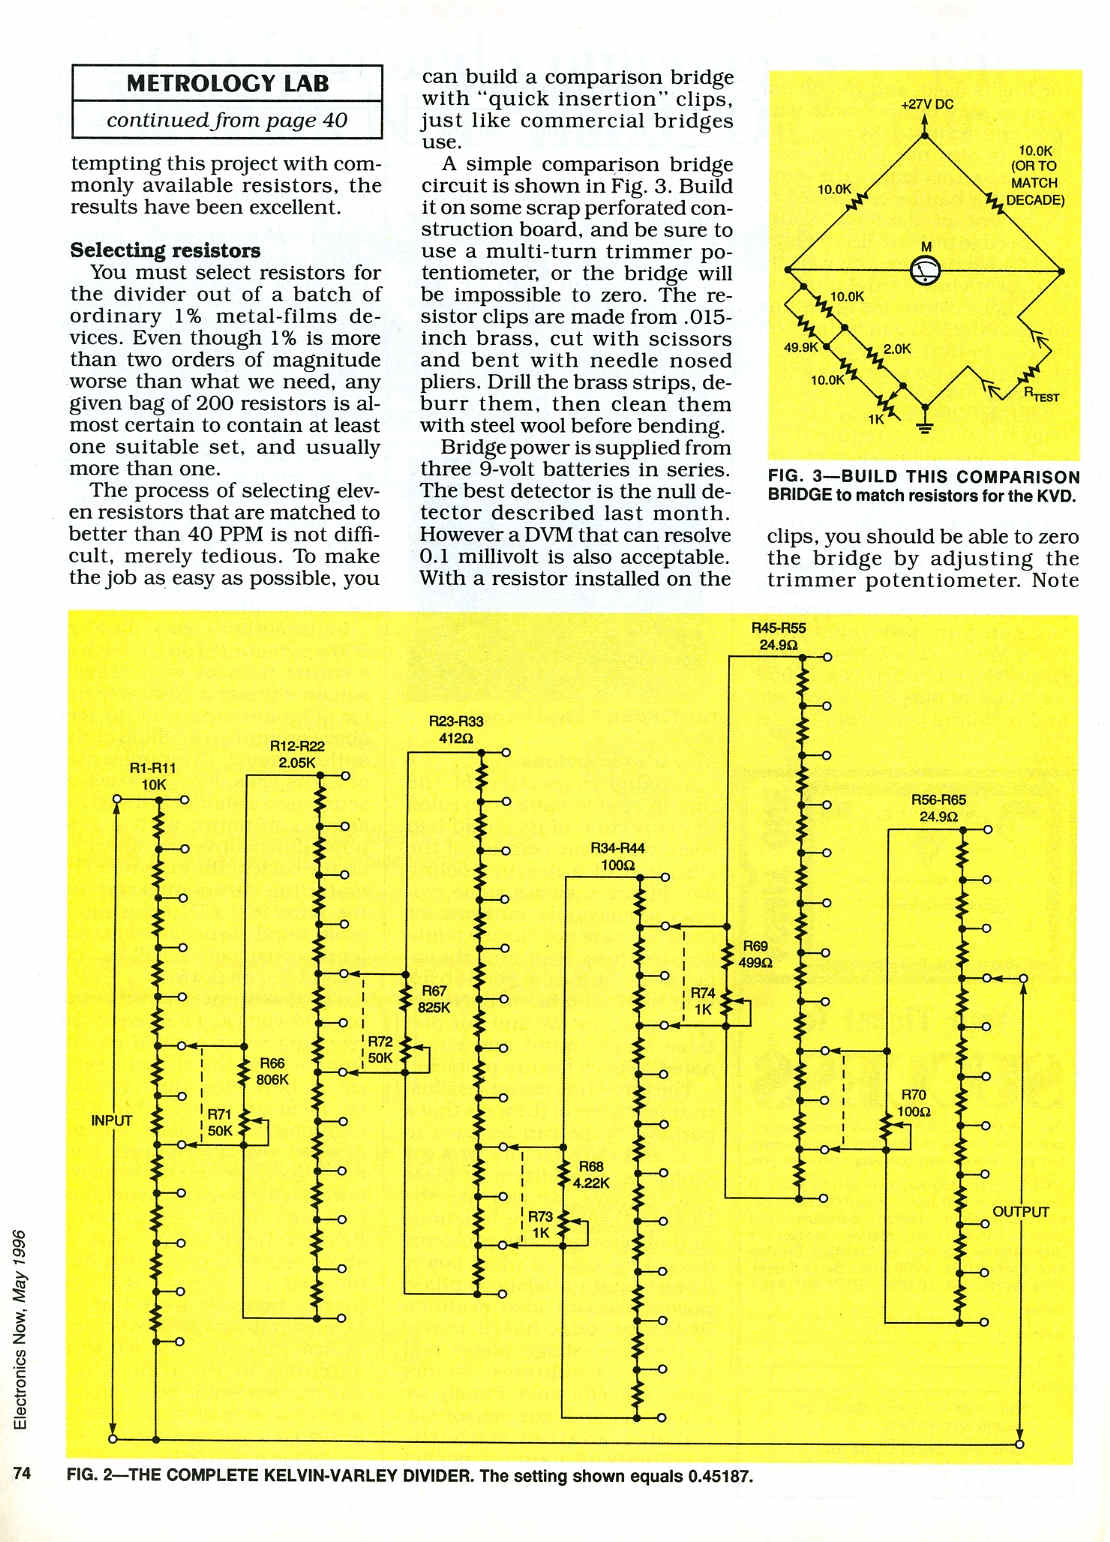 Kelvin Varley Divider And Precision Voltage Source Page 1 Circuit Potential Difference In Resistor Networks Im Thinking On Doing A But Having Some Trouble Finding Information Is There Any Advantage Of Each Stage With Lower